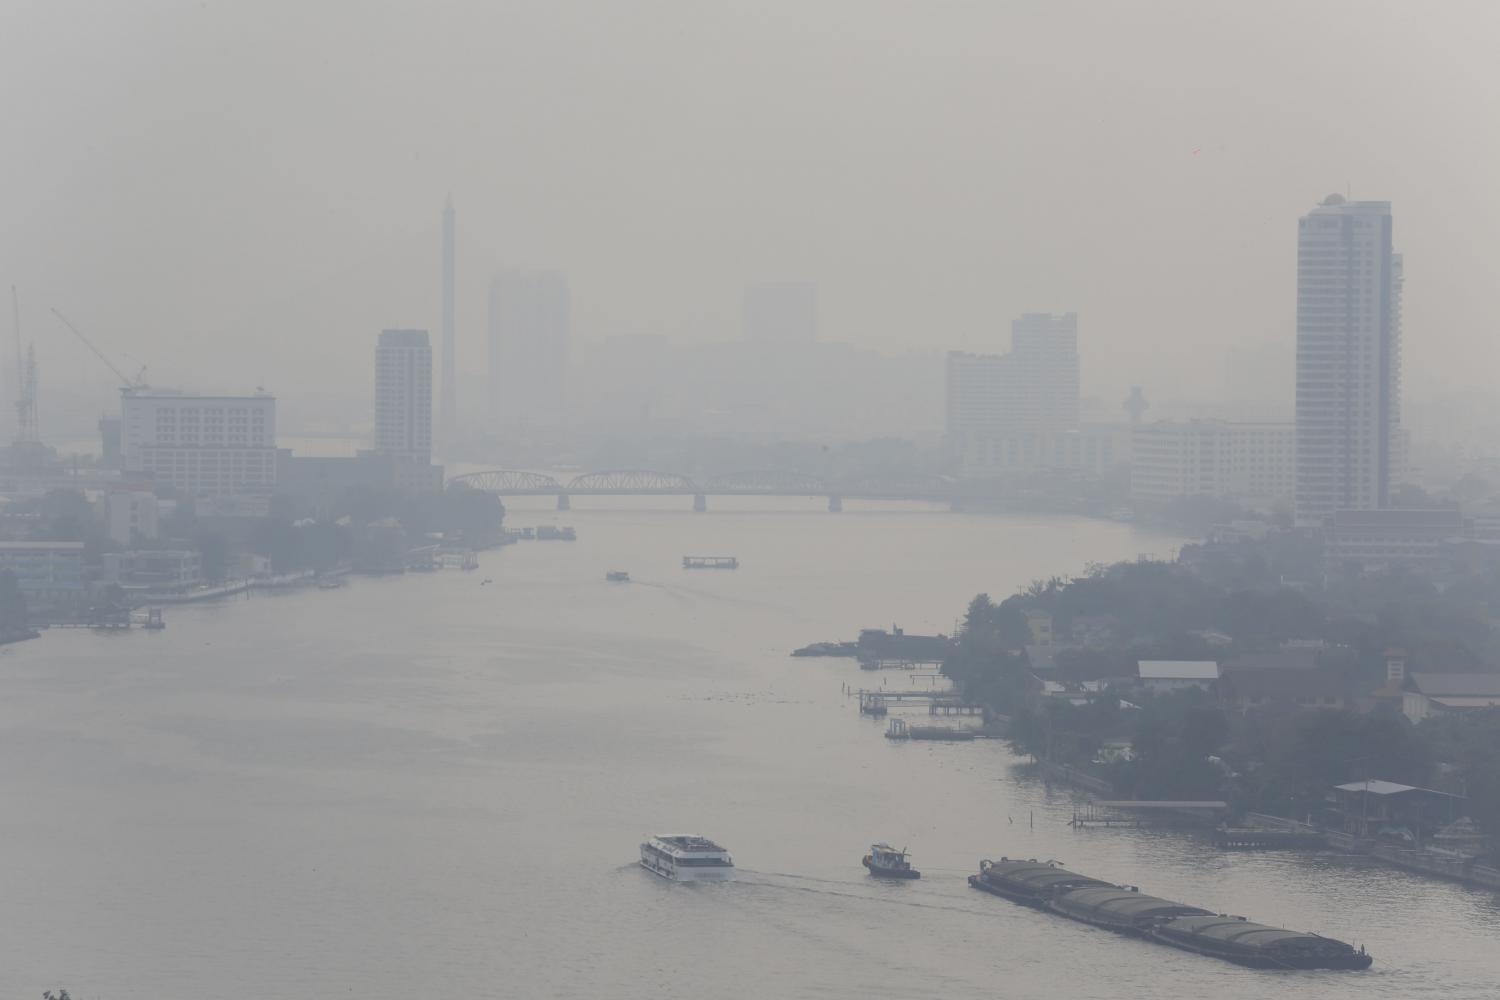 The Chao Phraya River is blanketed with thick haze on Monday as hazardous ultra-fine dust levels in the air exceeded so-called safe levels in many parts of Bangkok. Residents were warned to wear masks outdoors. (Photo by Pornprom Satrabhaya)